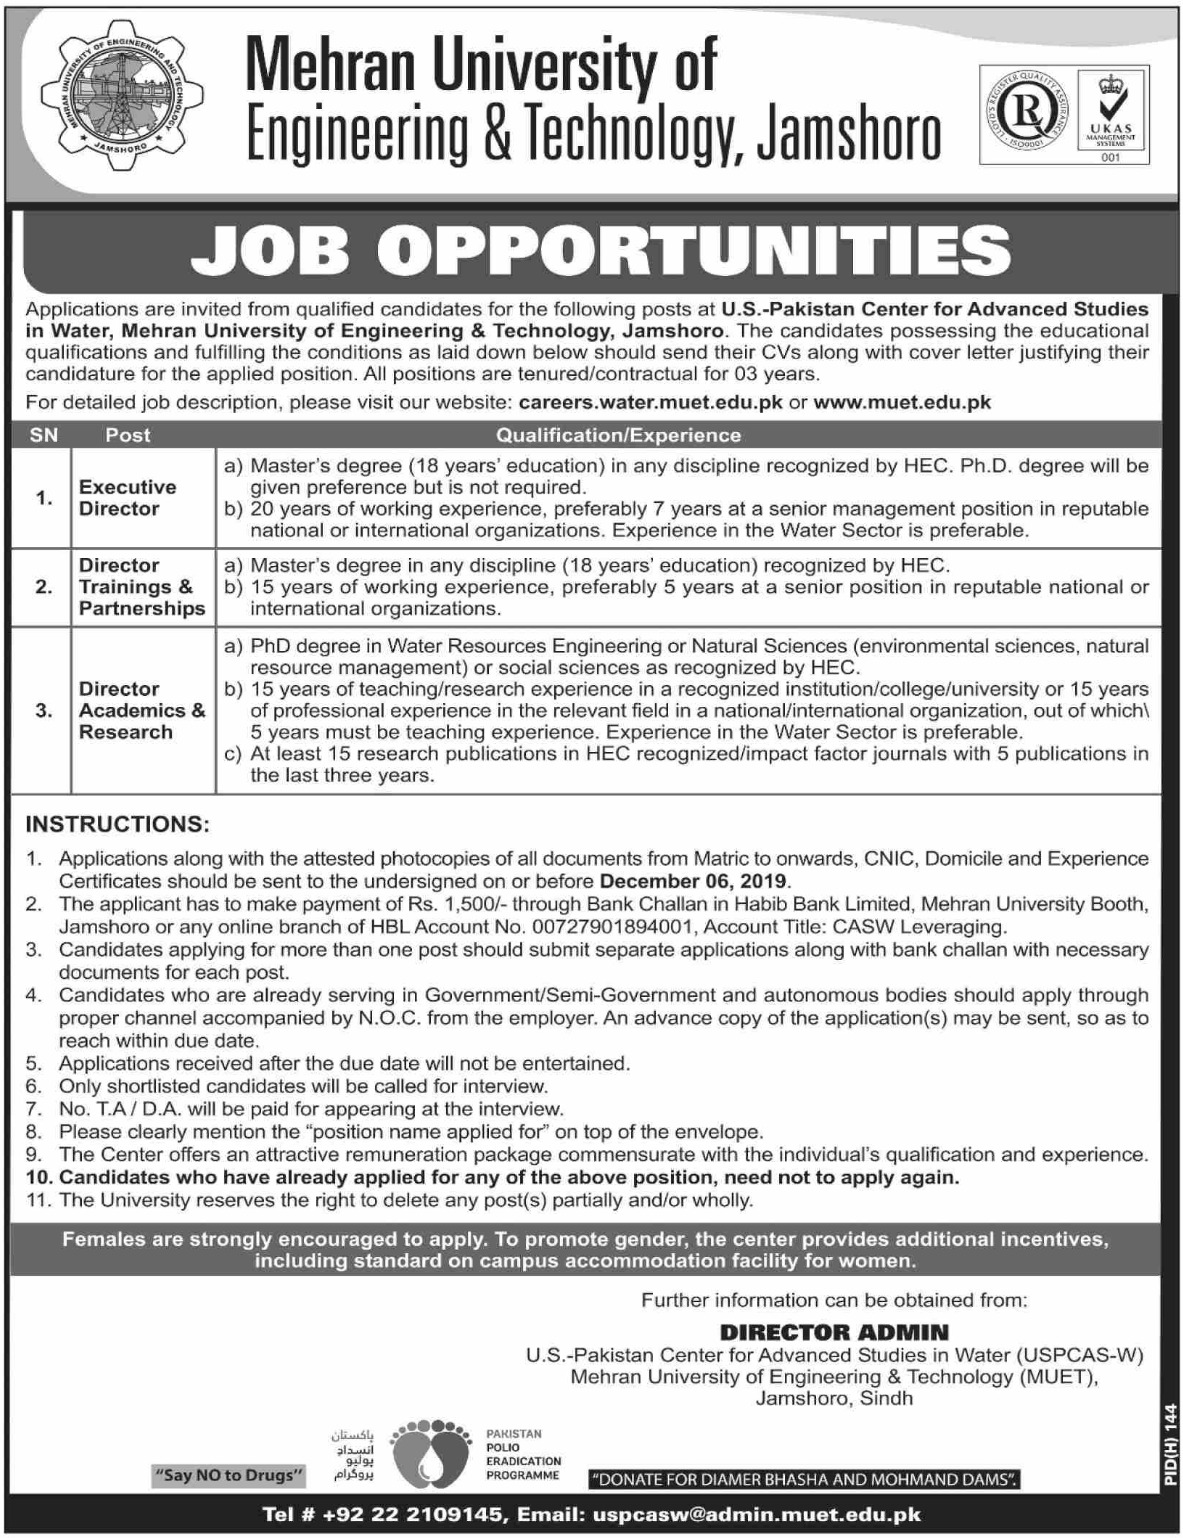 Mehran University of Engineering & Technology Jobs 2019 MUET Jamshoro